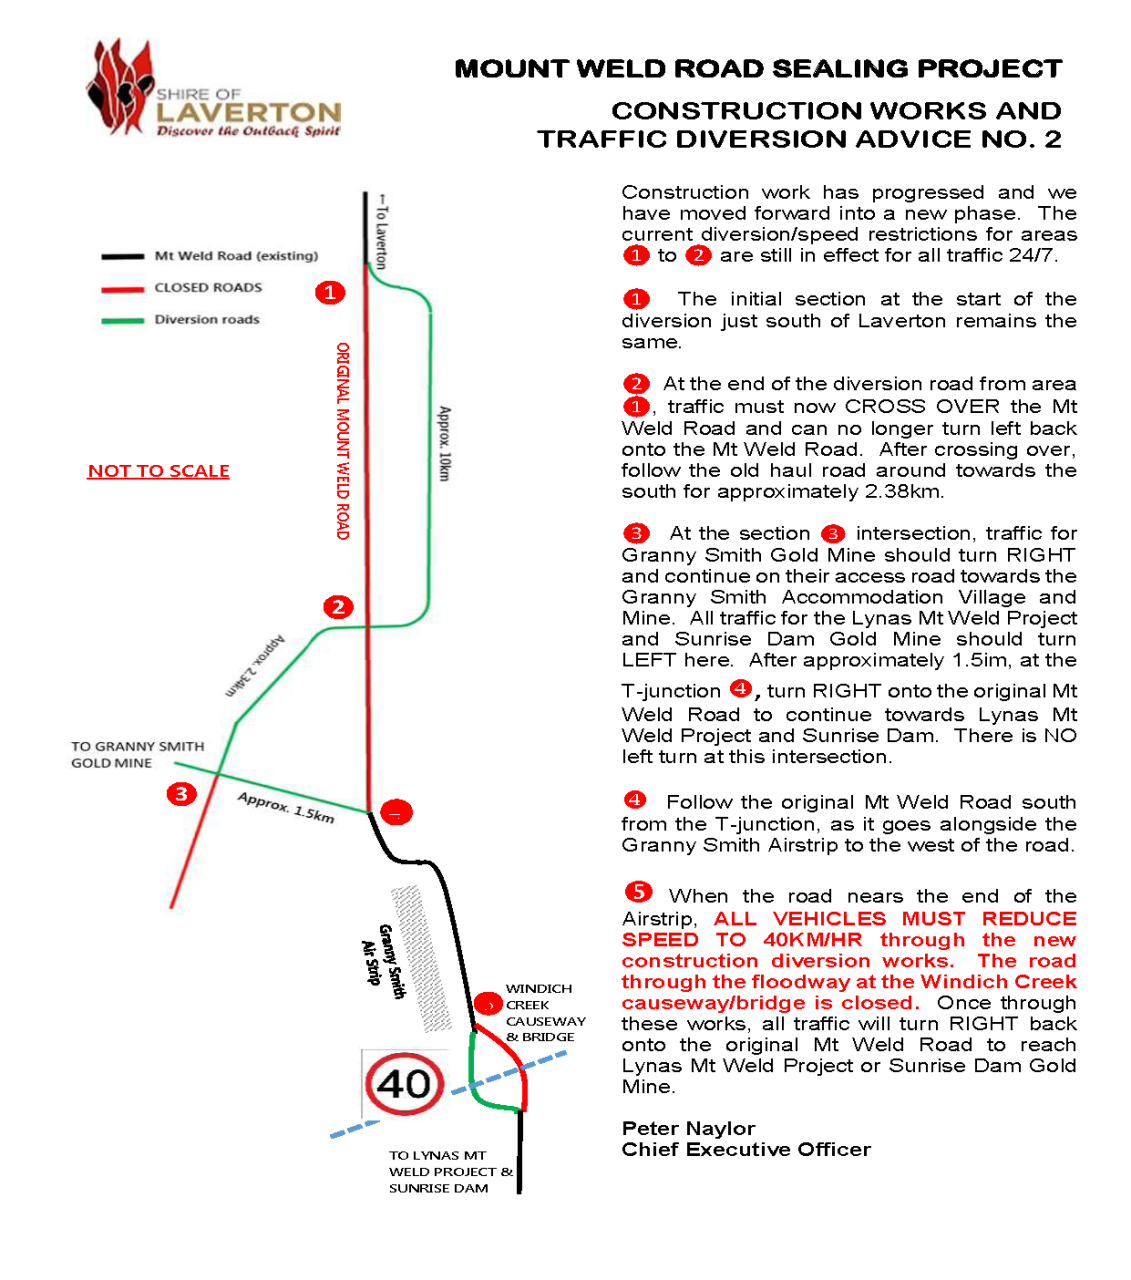 Mt Weld Construction/Diversion Advice No. 2